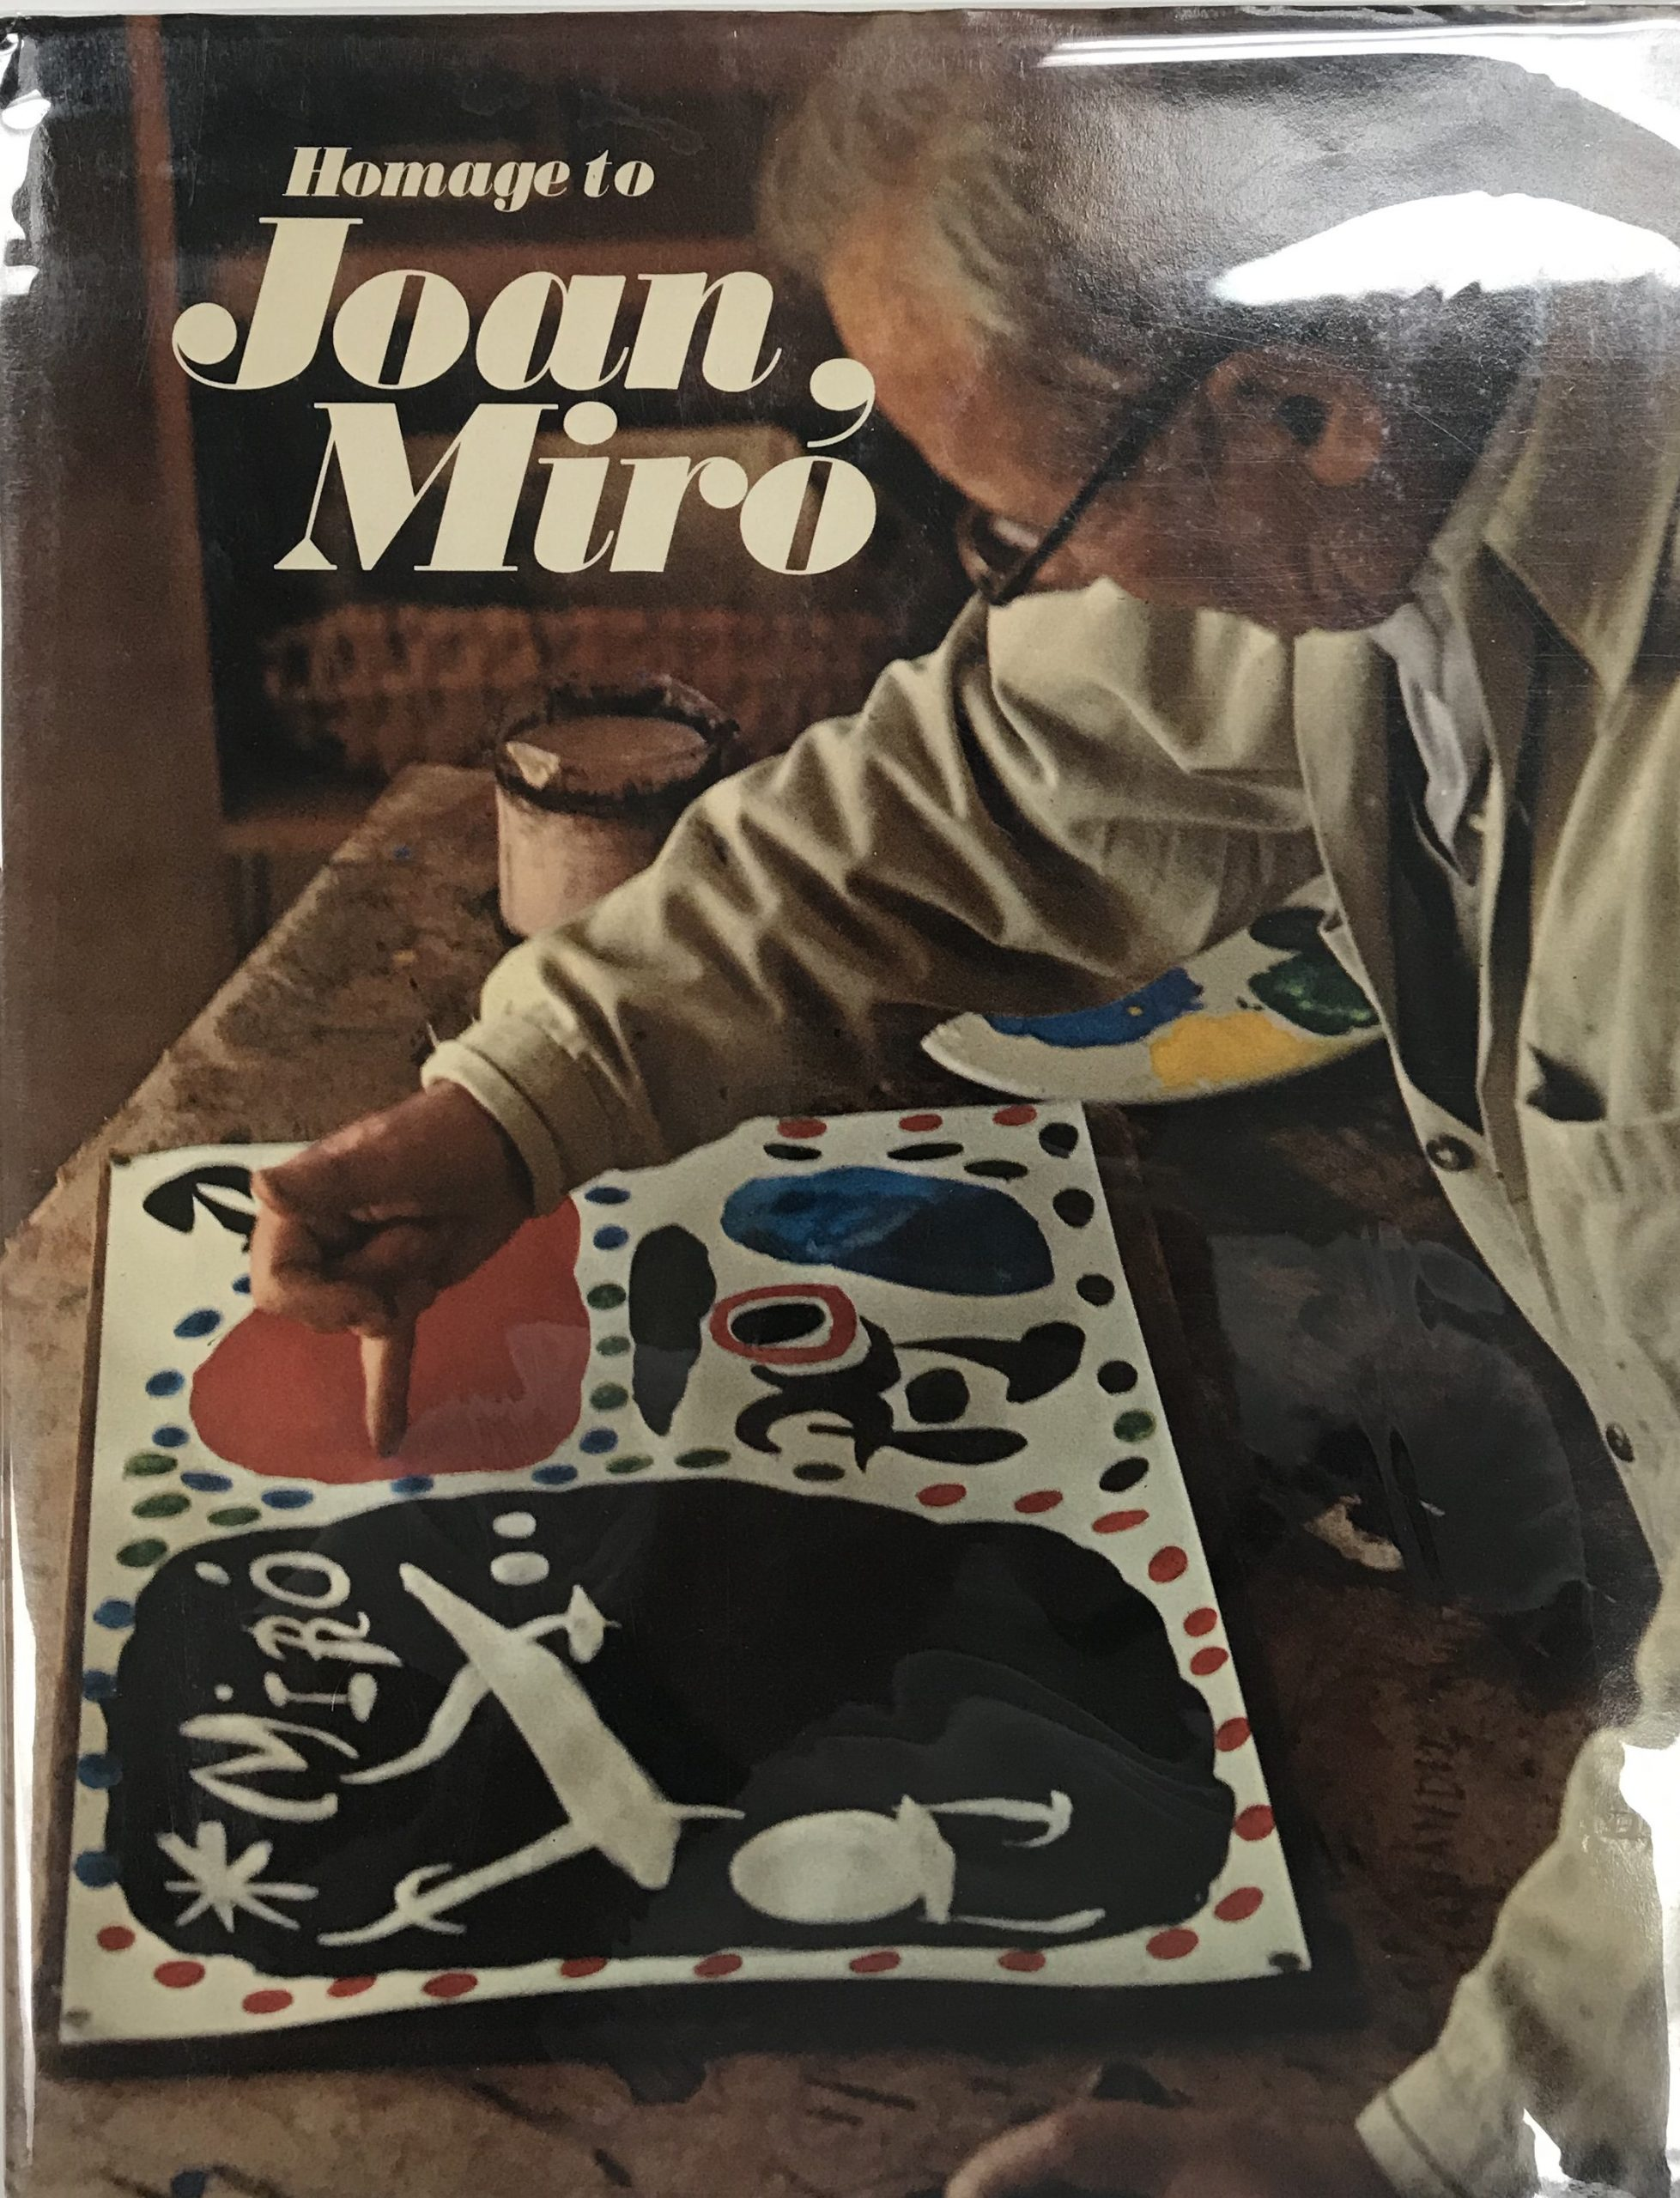 Book, Homage to Joan Miro, XX Siecle, contains 1 Lithograph